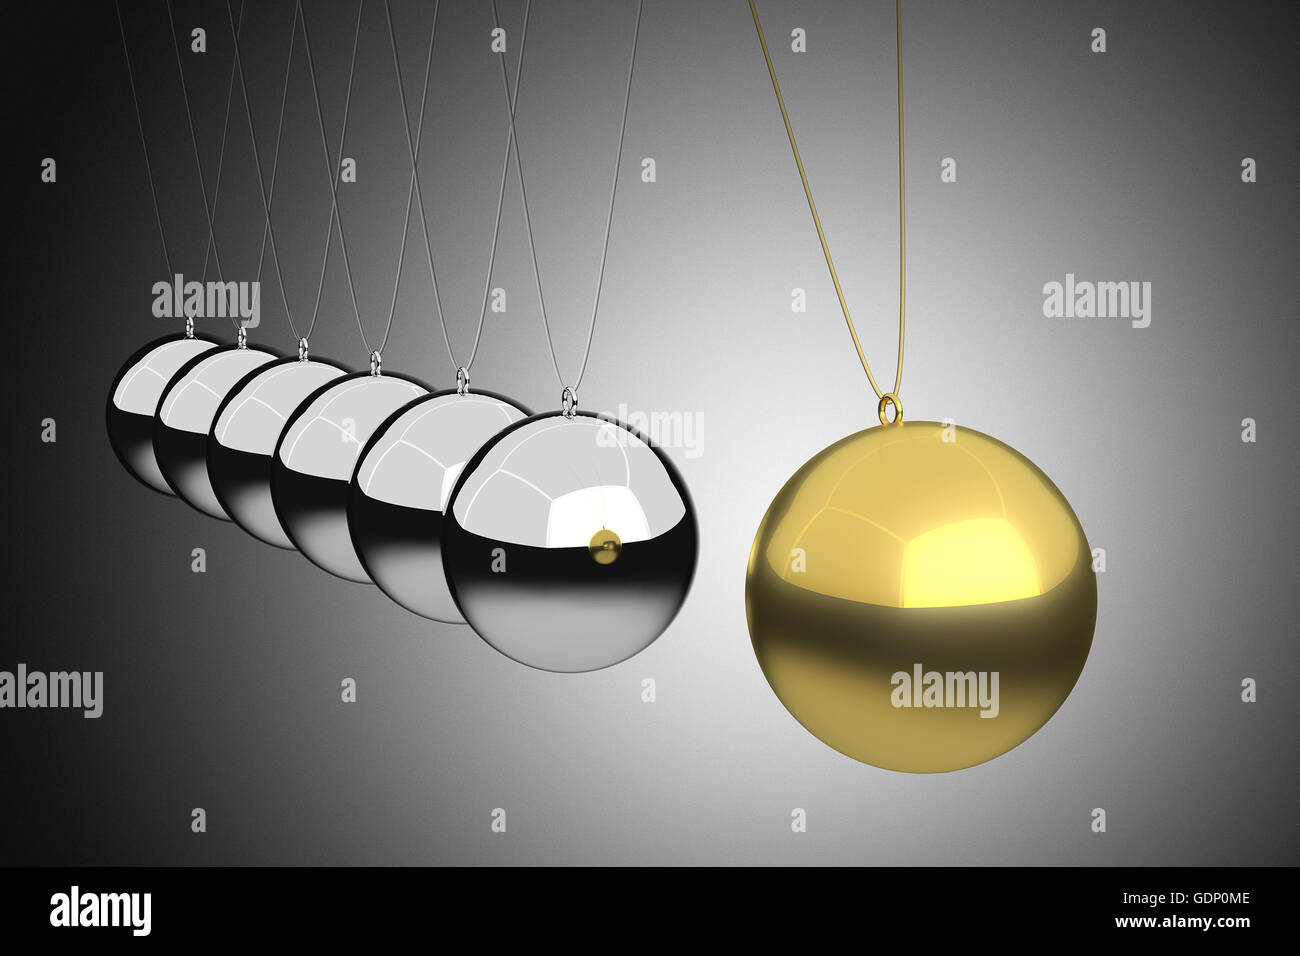 3D rendering of leadership concept illustrated by Newton cradle. - Stock Image